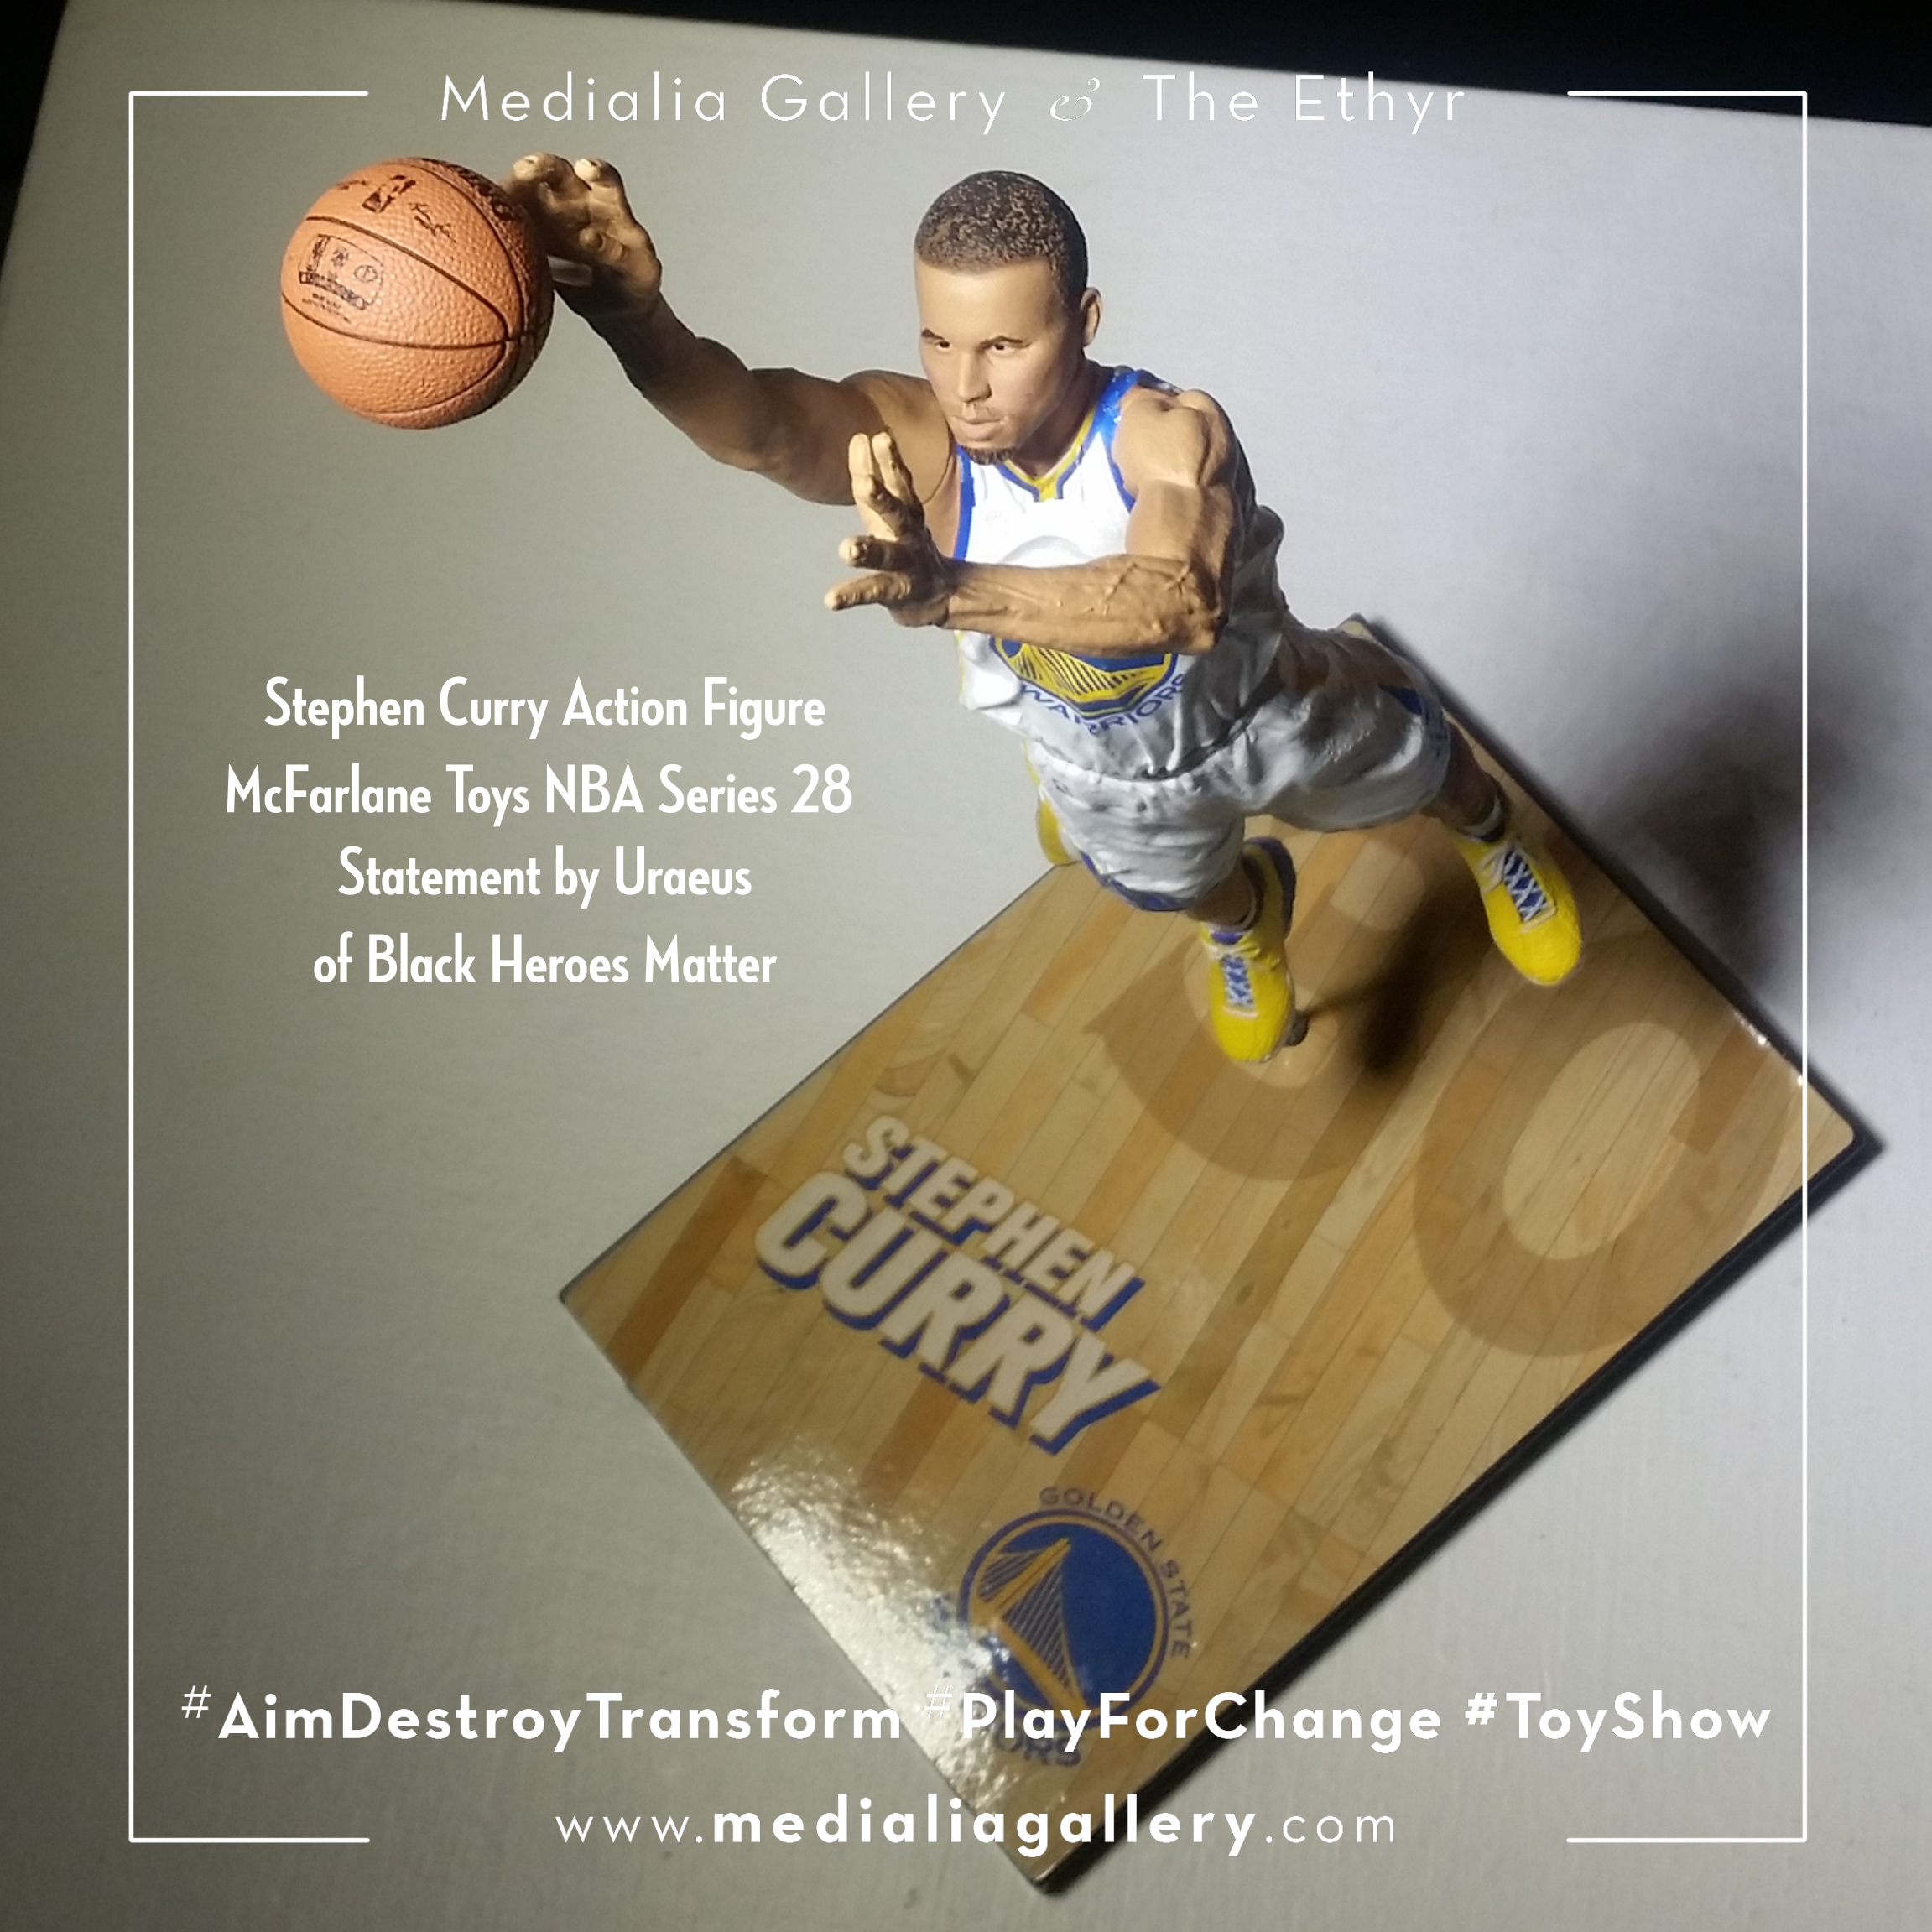 MedialiaGallery_The_Ethyr_AimDestroyTransform_Toy_Show_announcement_StephCurry_November_2017.jpg.png